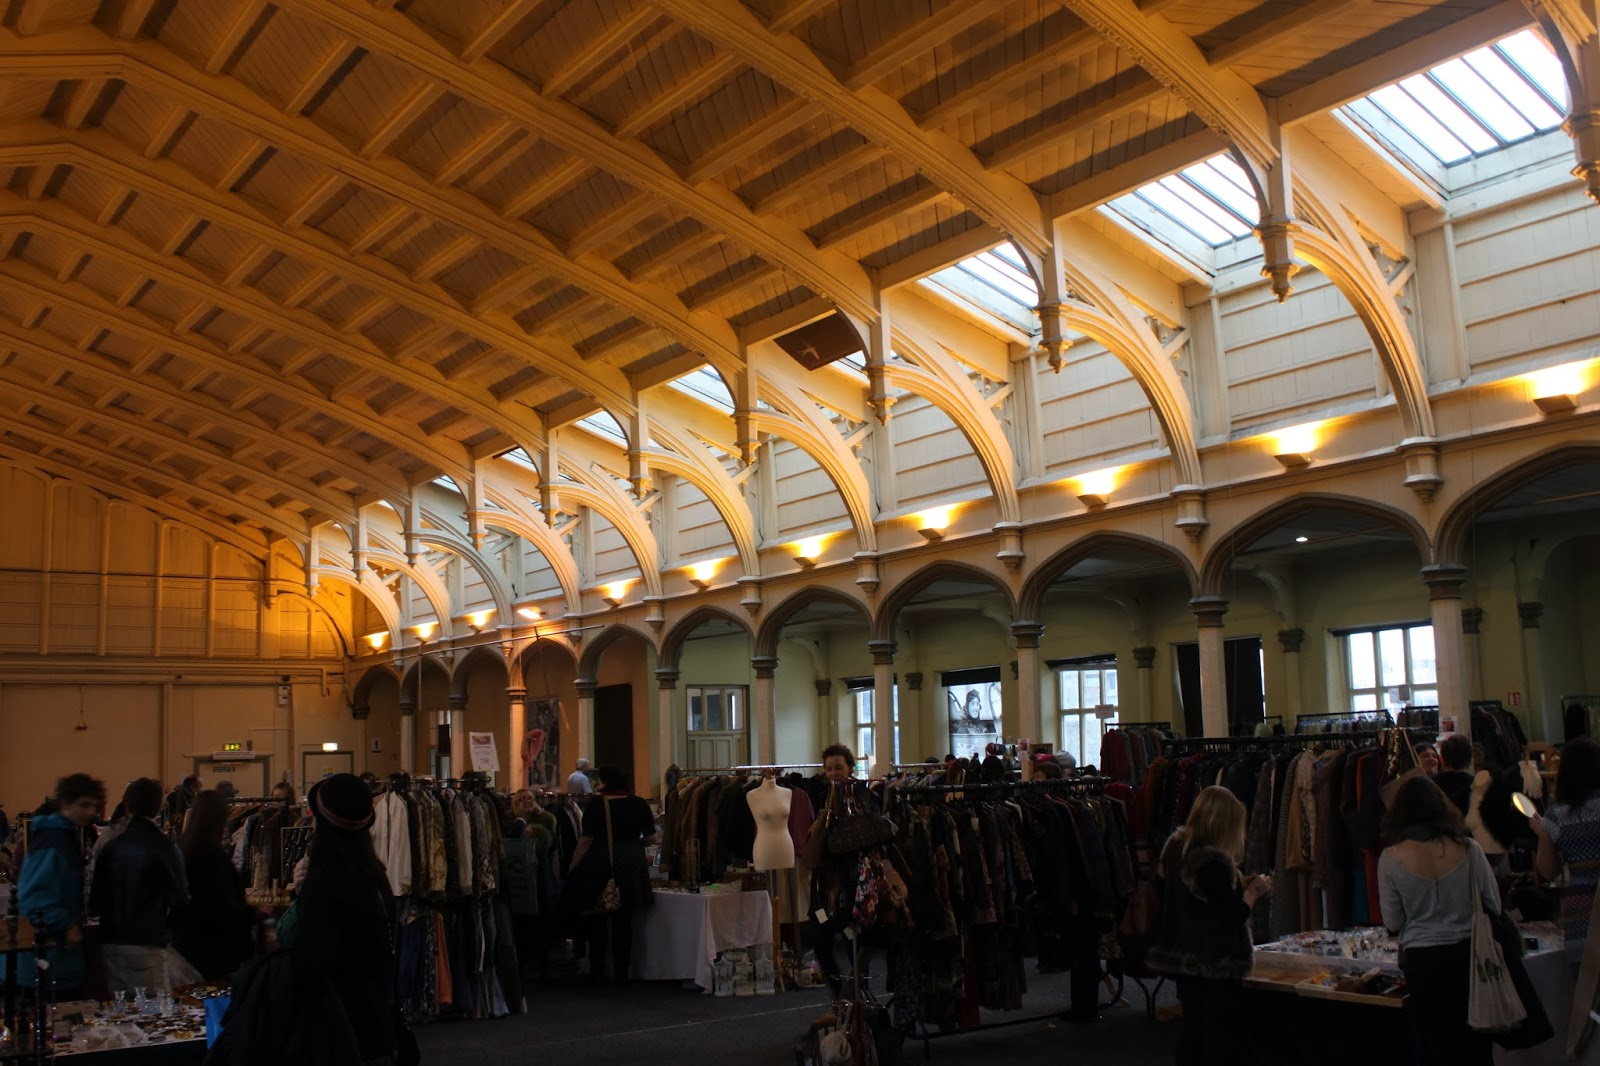 vintage fair, bristol, the passenger shed